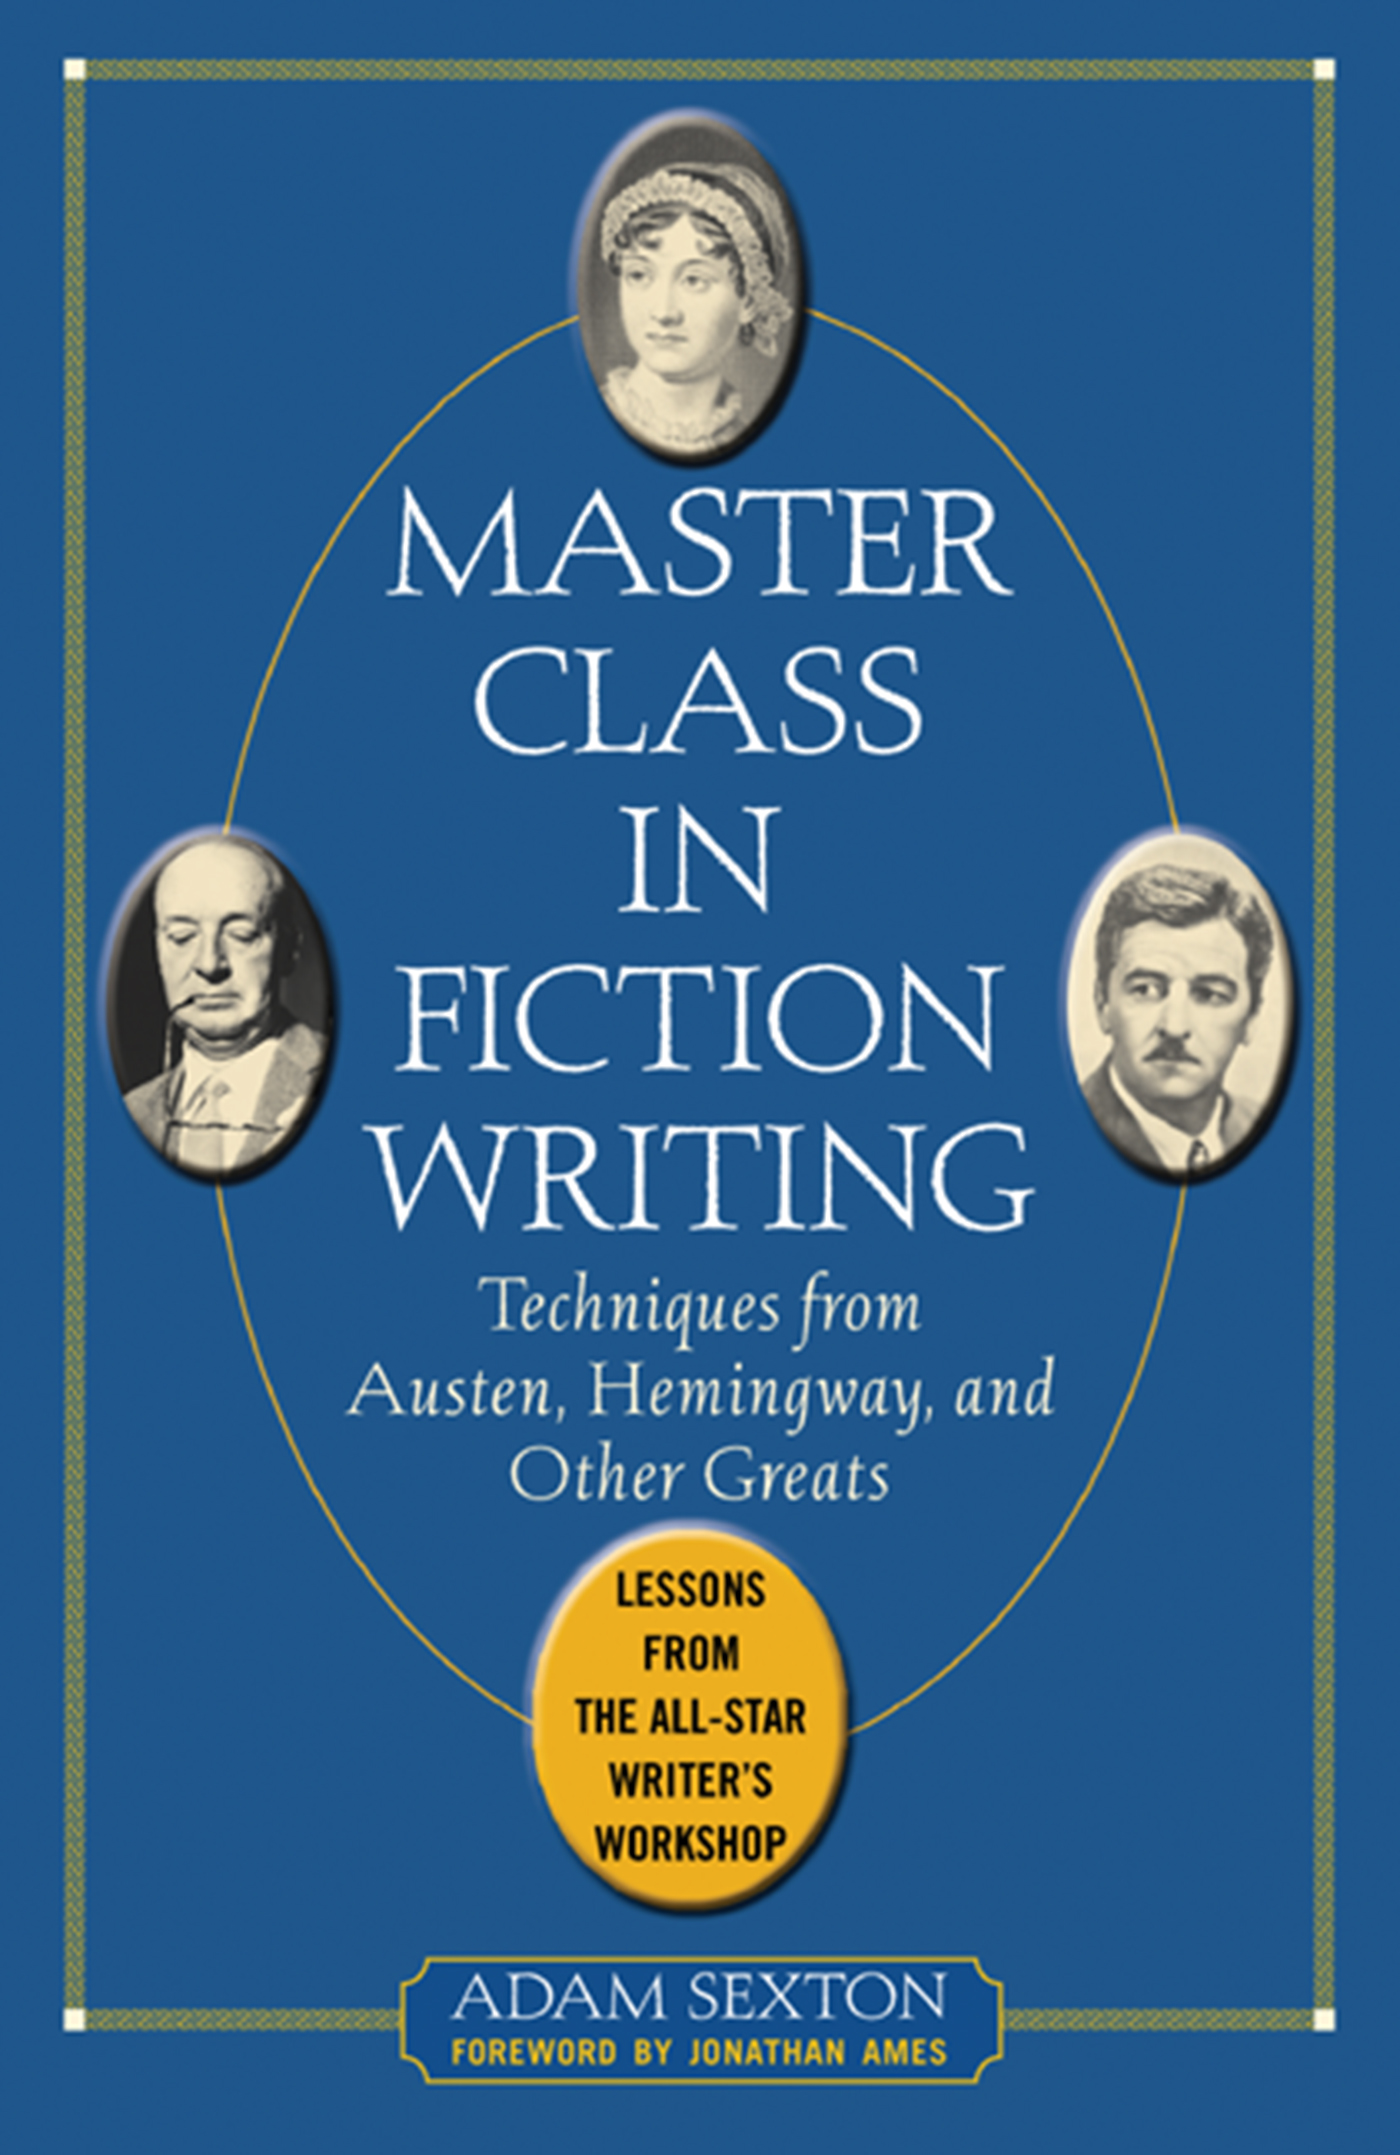 Download Ebook Master Class in Fiction Writing: Techniques from Austen, Hemingway, and Other Greats by Adam Sexton Pdf